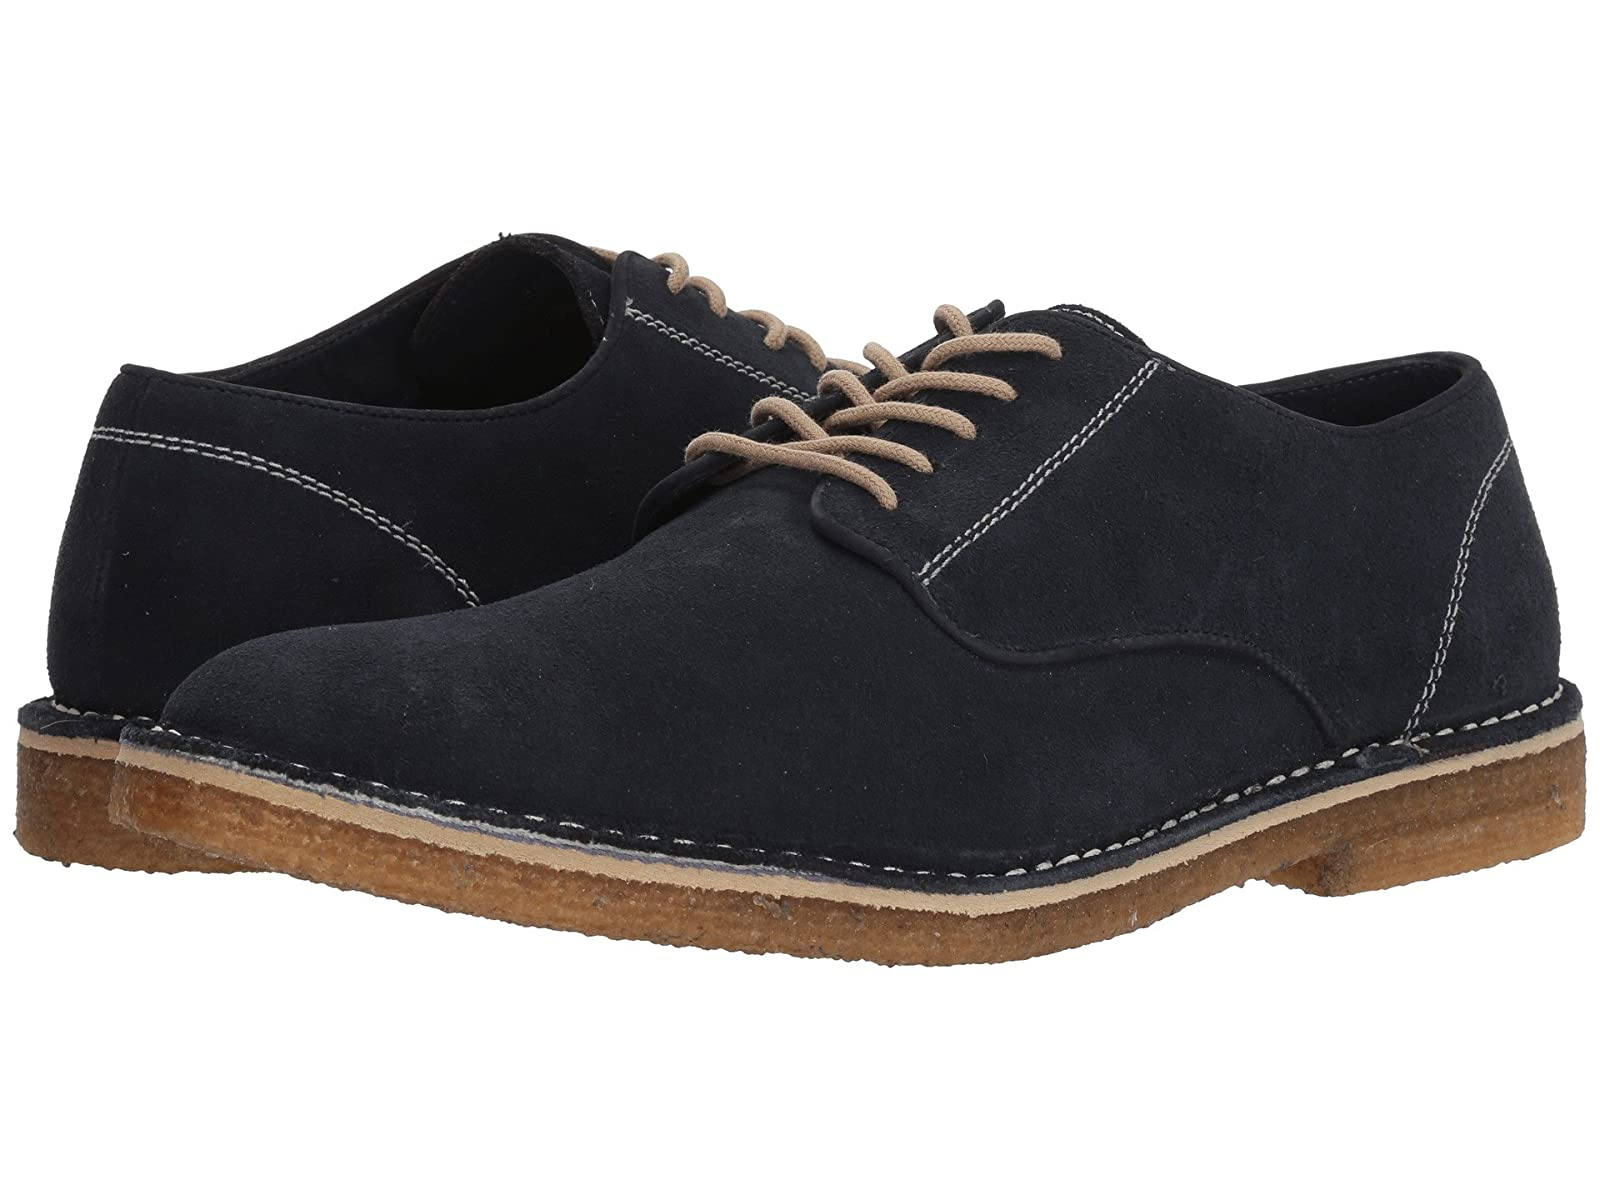 RUSH by Gordon Rush HanigerAtmospheric grades have affordable shoes